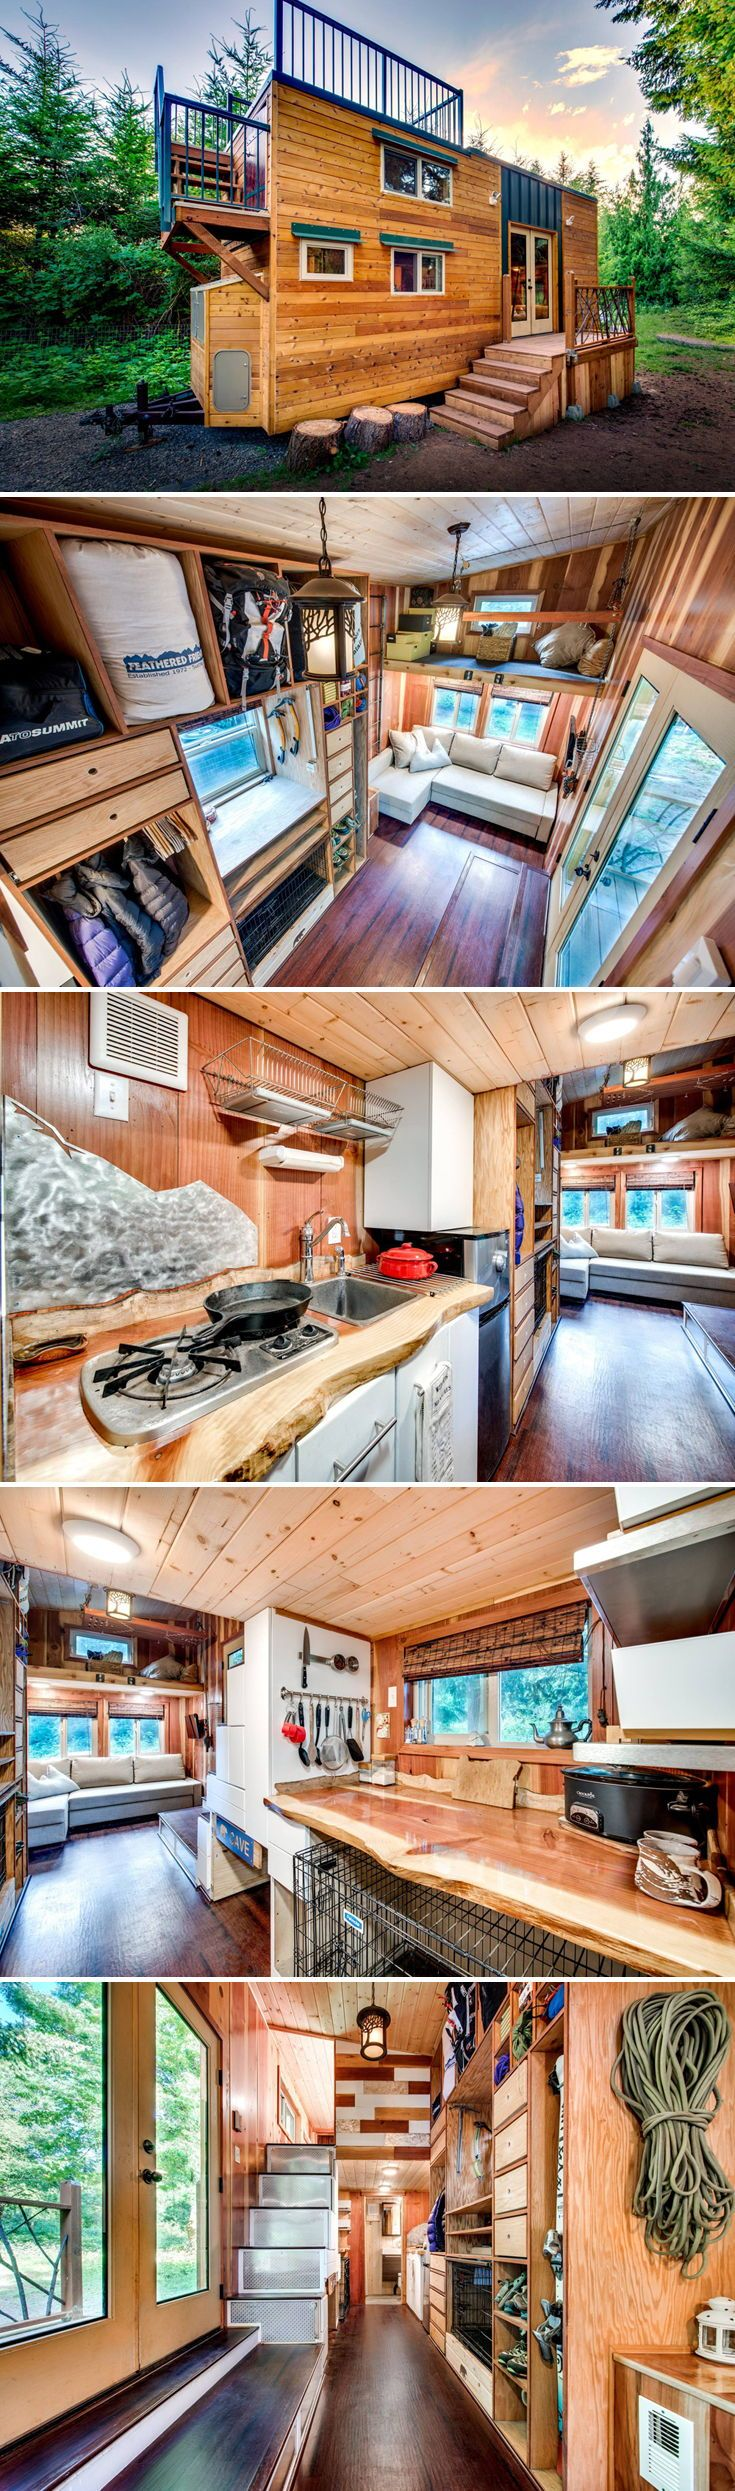 For 18 months, outdoor enthusiasts and engineers Tina and Luke Orlando designed and redesigned the perfect tiny house to fit their needs. The result was Basecamp, a 204-square-foot tiny house with a large rooftop deck, lots of storage for their outdoor gear, and accommodations for their dogs.